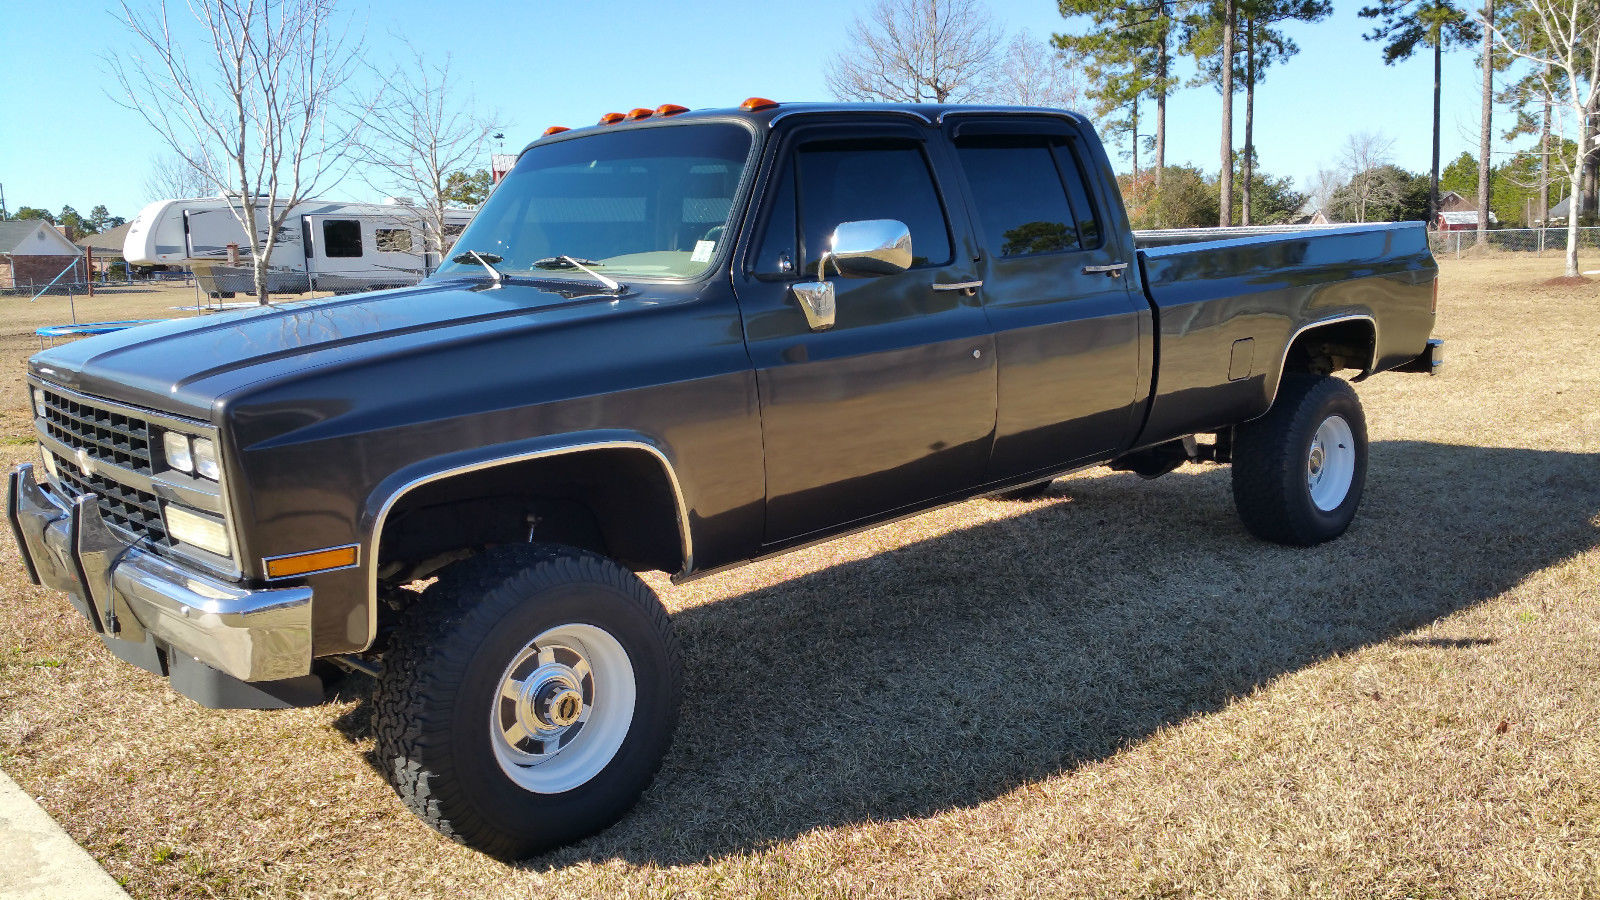 1982 chevy silverado 3500 crew cab long bed 4x4 truck classic chevrolet c k pickup 3500 1982. Black Bedroom Furniture Sets. Home Design Ideas